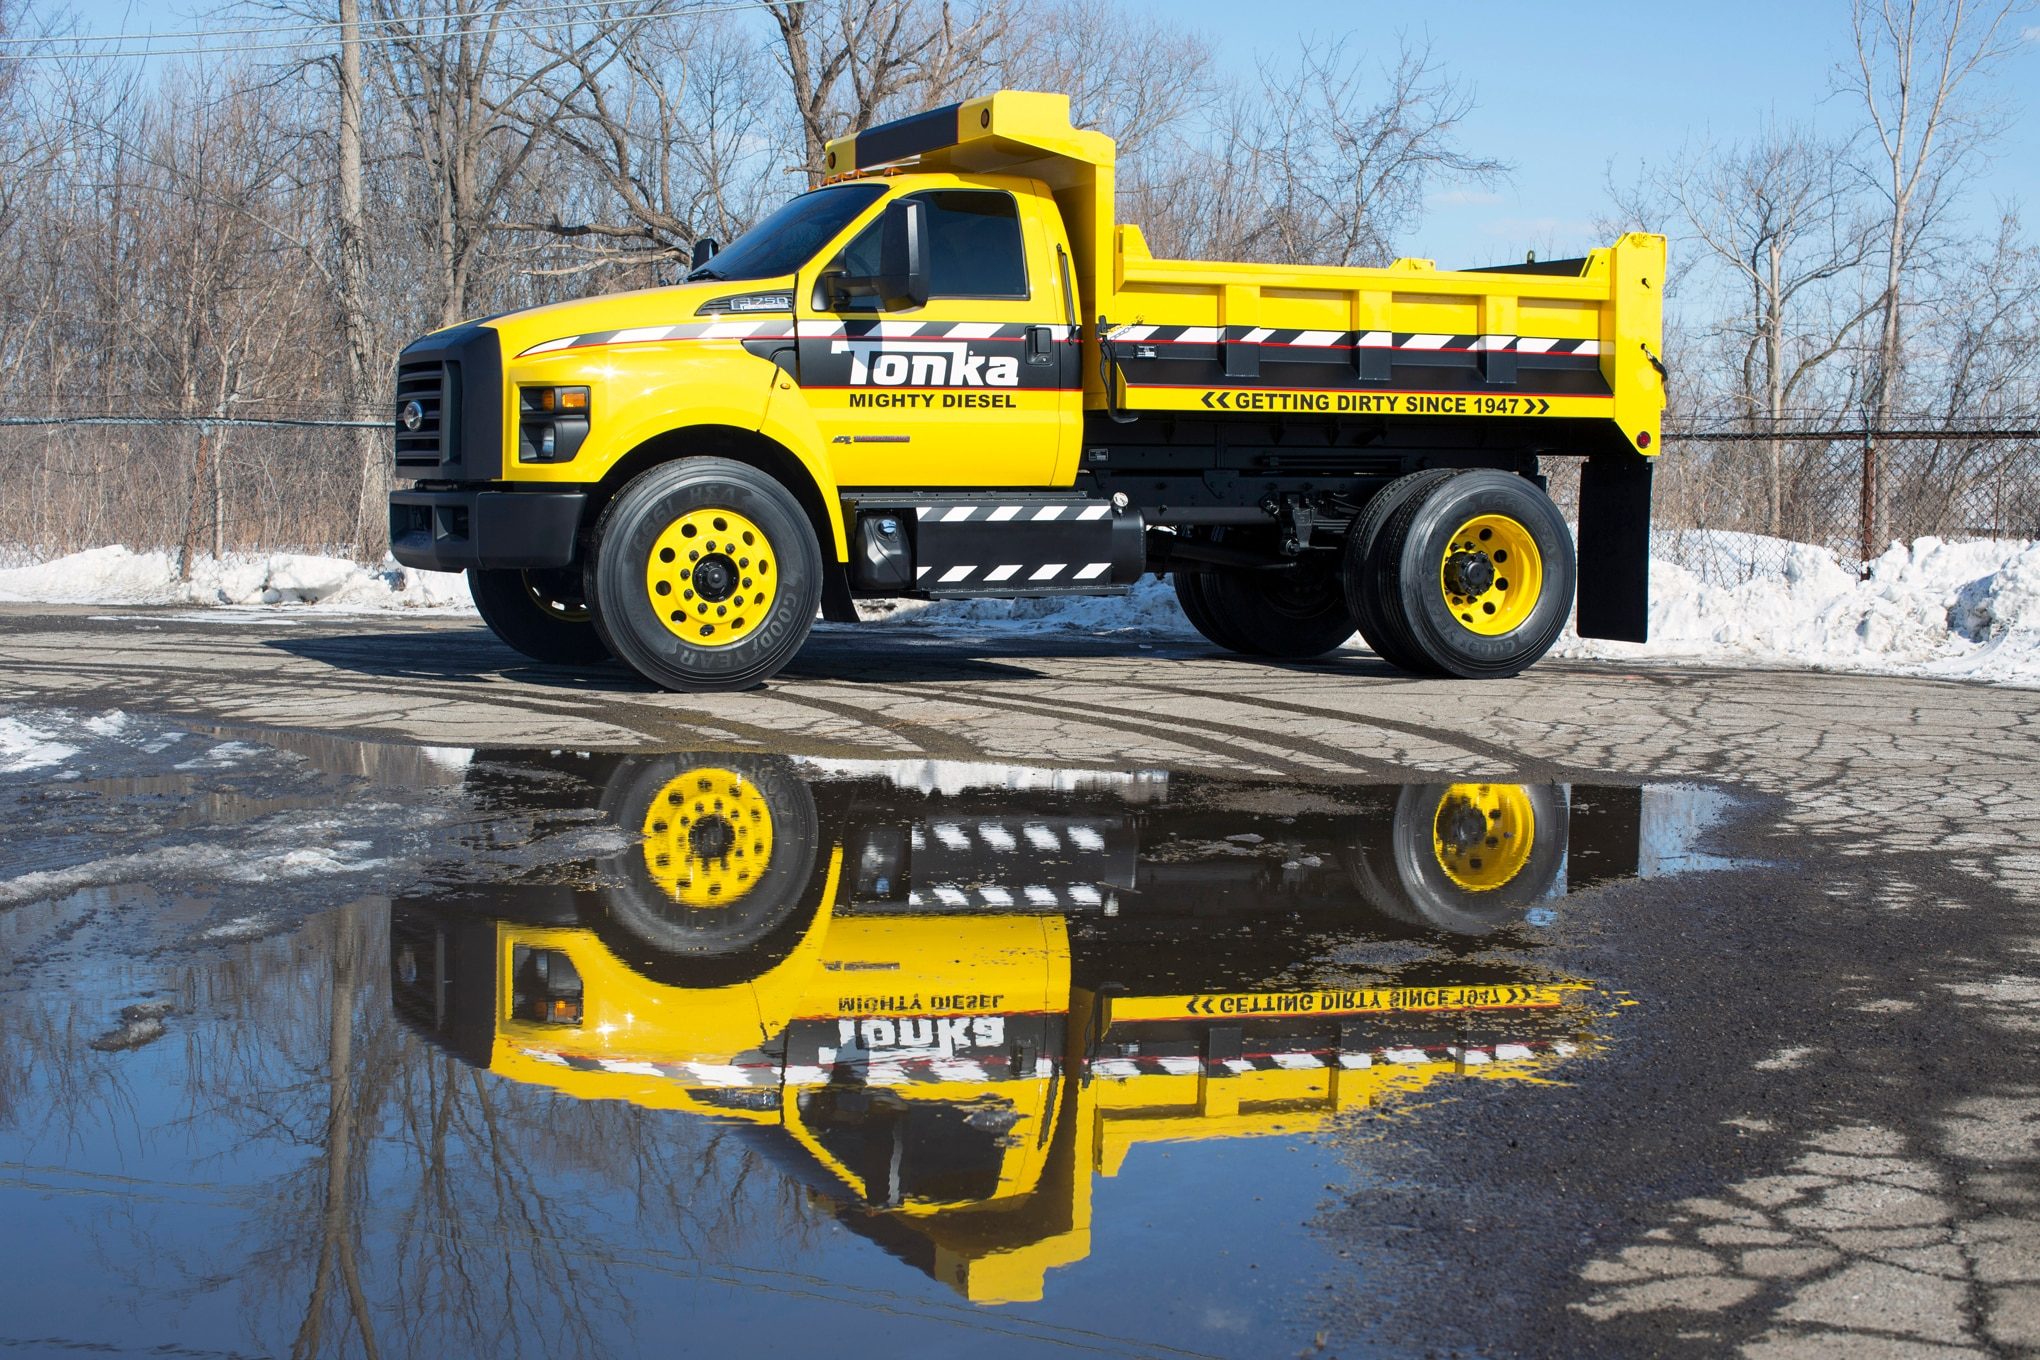 2016 ford f 750 tonka dump truck brings popular toy to life. Black Bedroom Furniture Sets. Home Design Ideas